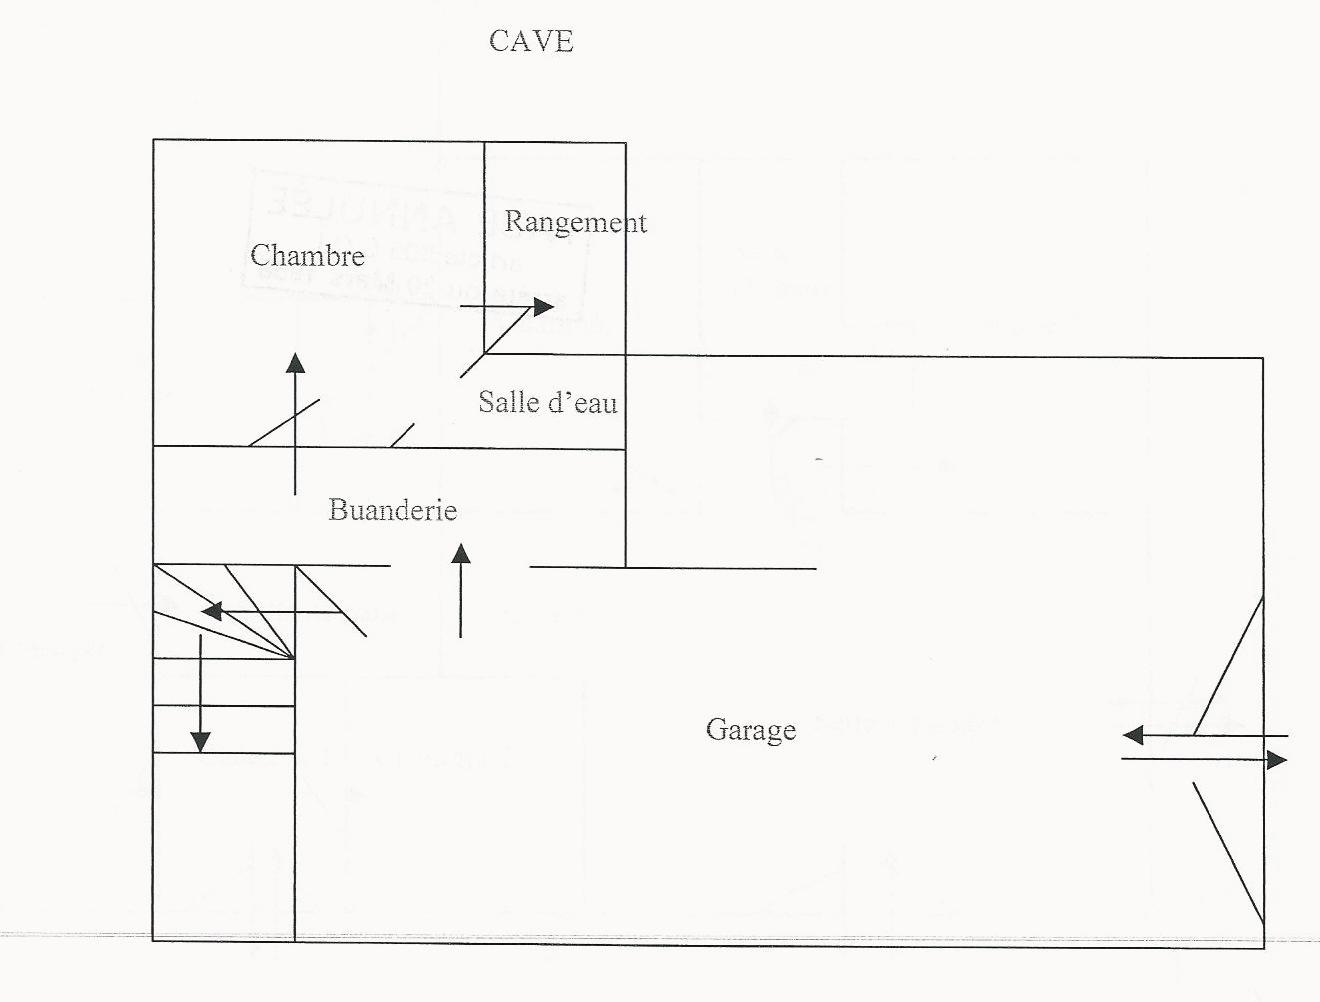 Garage - not to scale